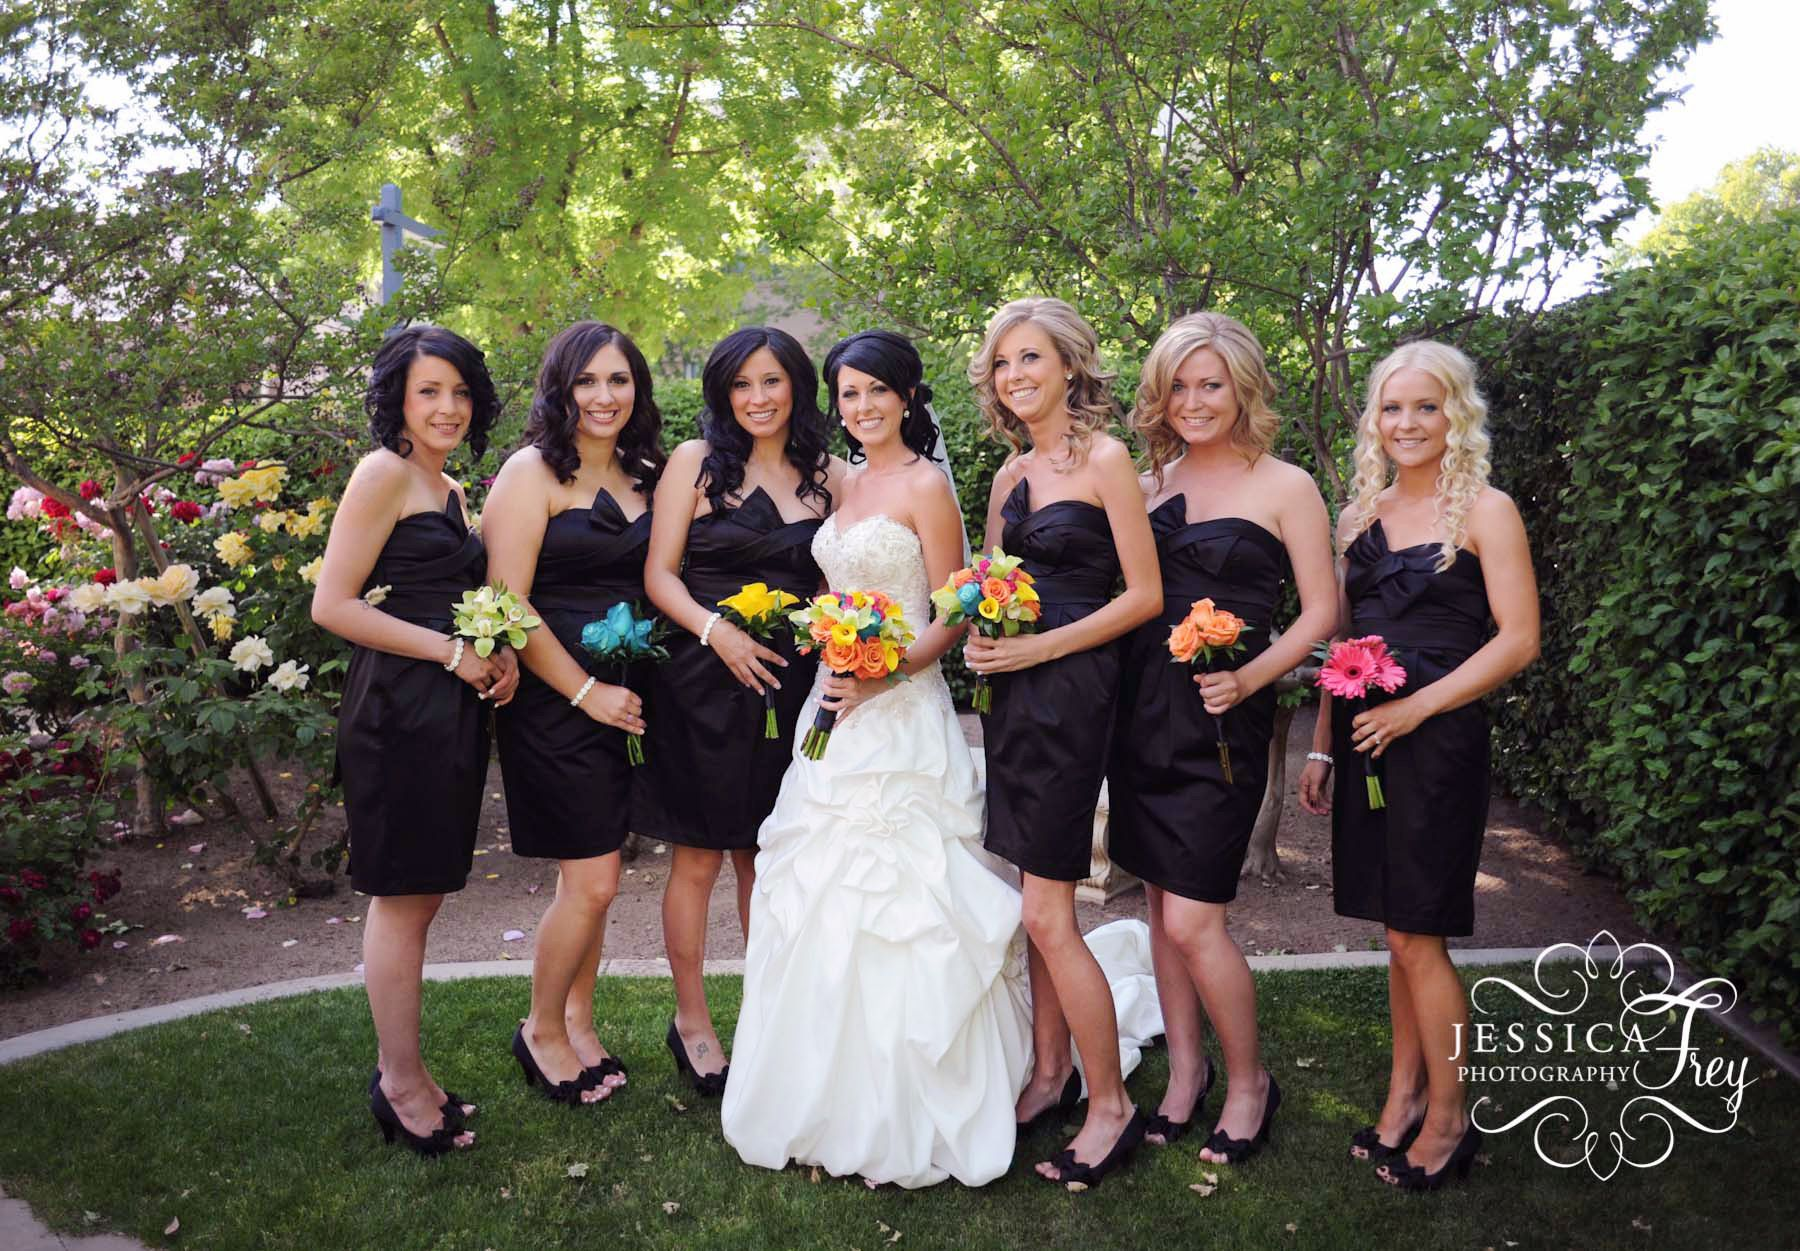 Black brides made dresses bridesmaid dresses 01 1024x711 wedding black brides made dresses bridesmaid dresses 01 1024x711 wedding wednesday bridesmaid dresses ombrellifo Image collections